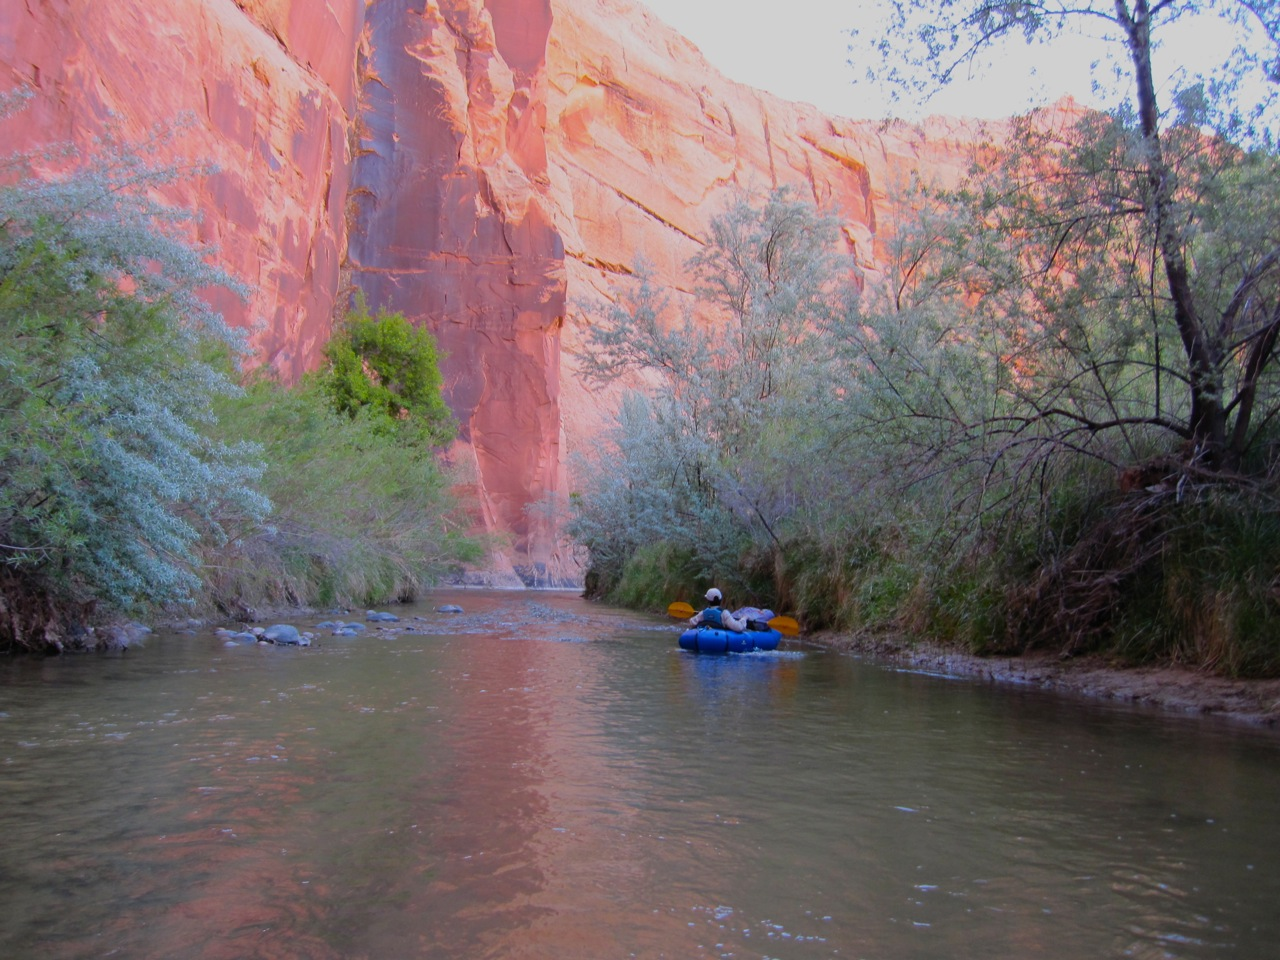 Below Boulder Creek, the river gets reasonably deep and the canyon walls get higher and closer. Here's where the Escalante really shines.